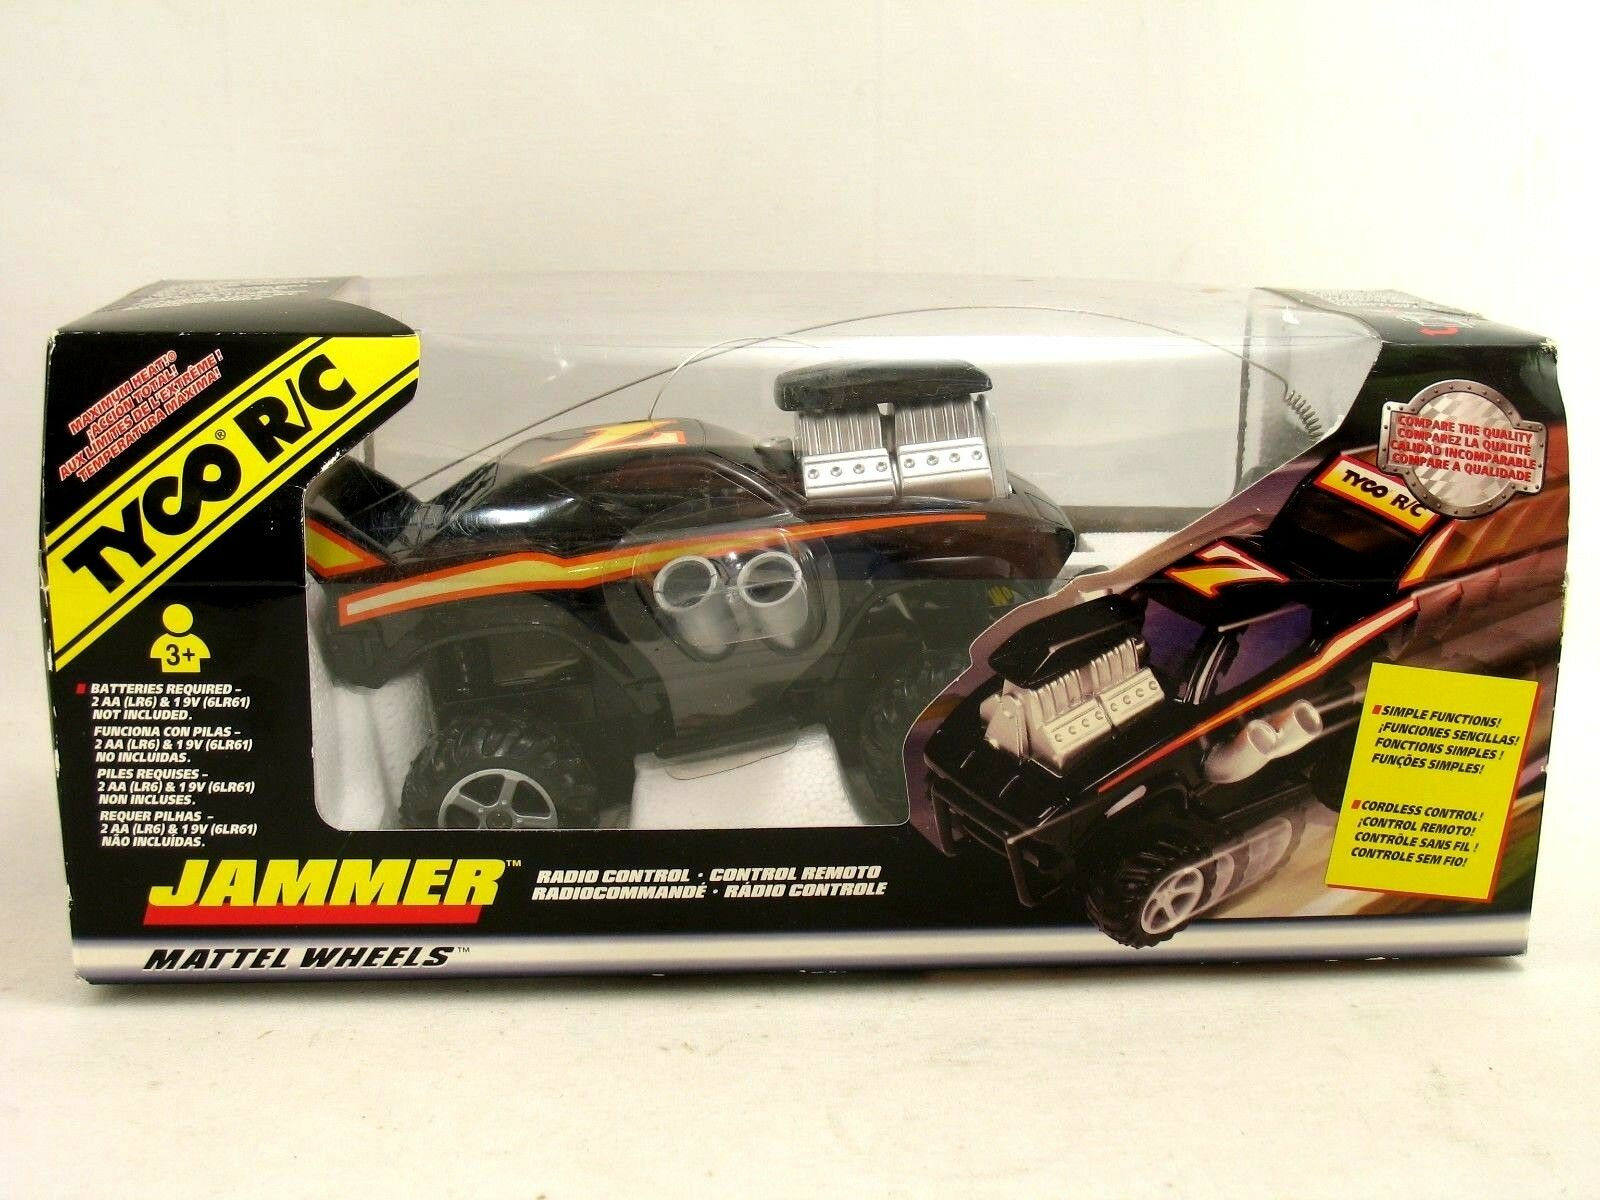 Tyco R C Jammerfrom,34347 1998 27 MHz ny and seled in Original Box